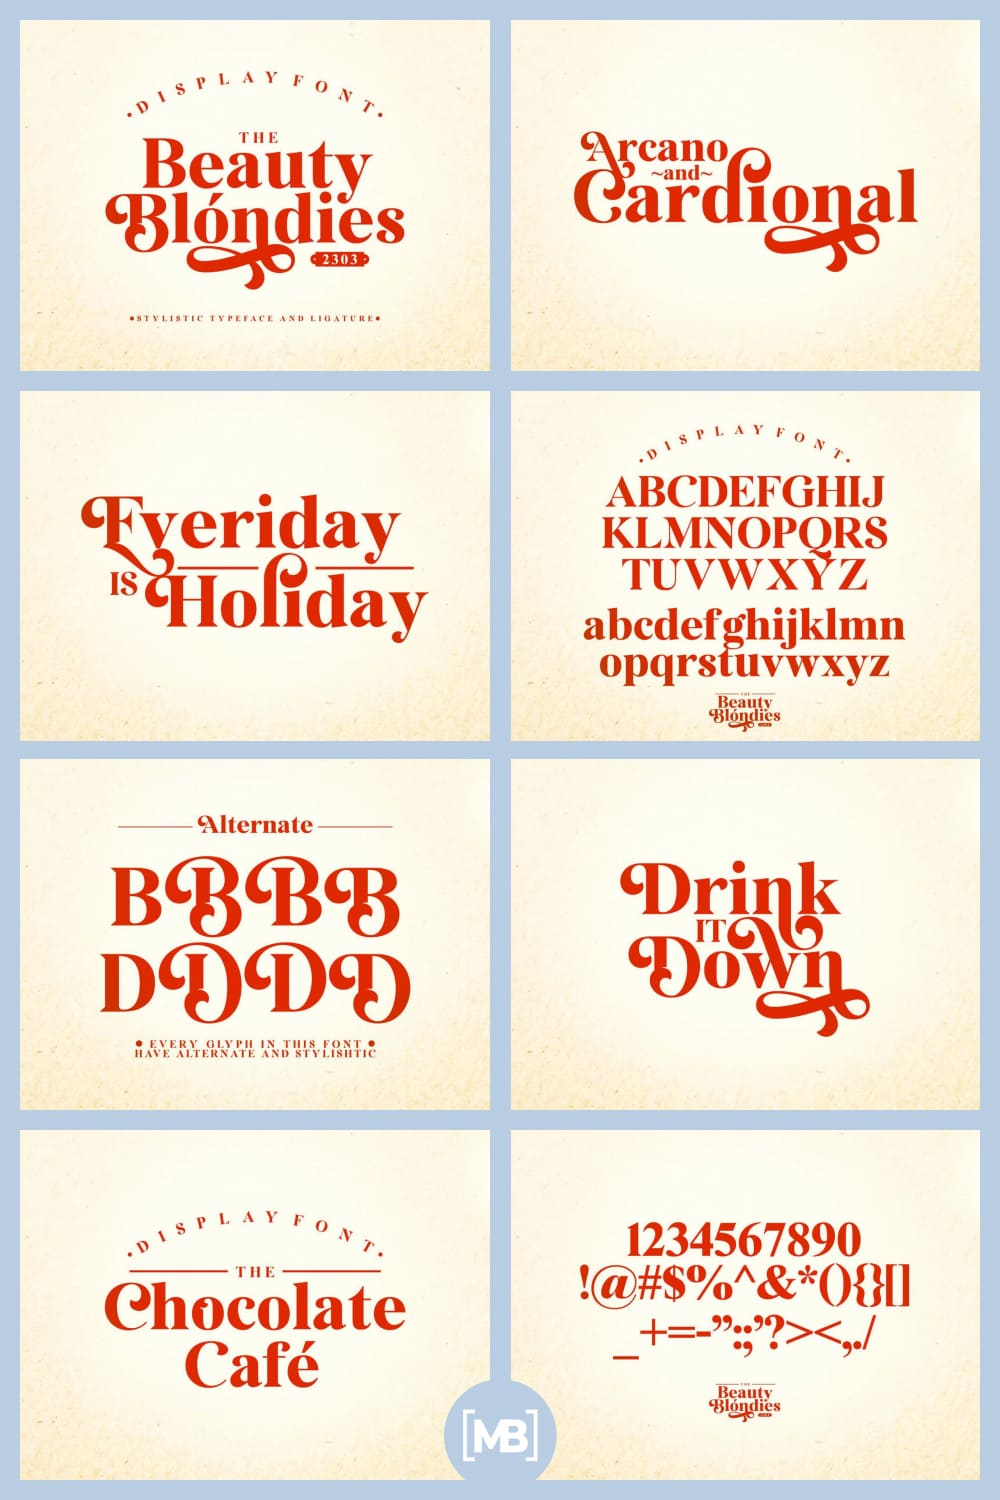 Beauty blondies is a serif typeface lifted up by a set of stylistic and alternate glyphs.